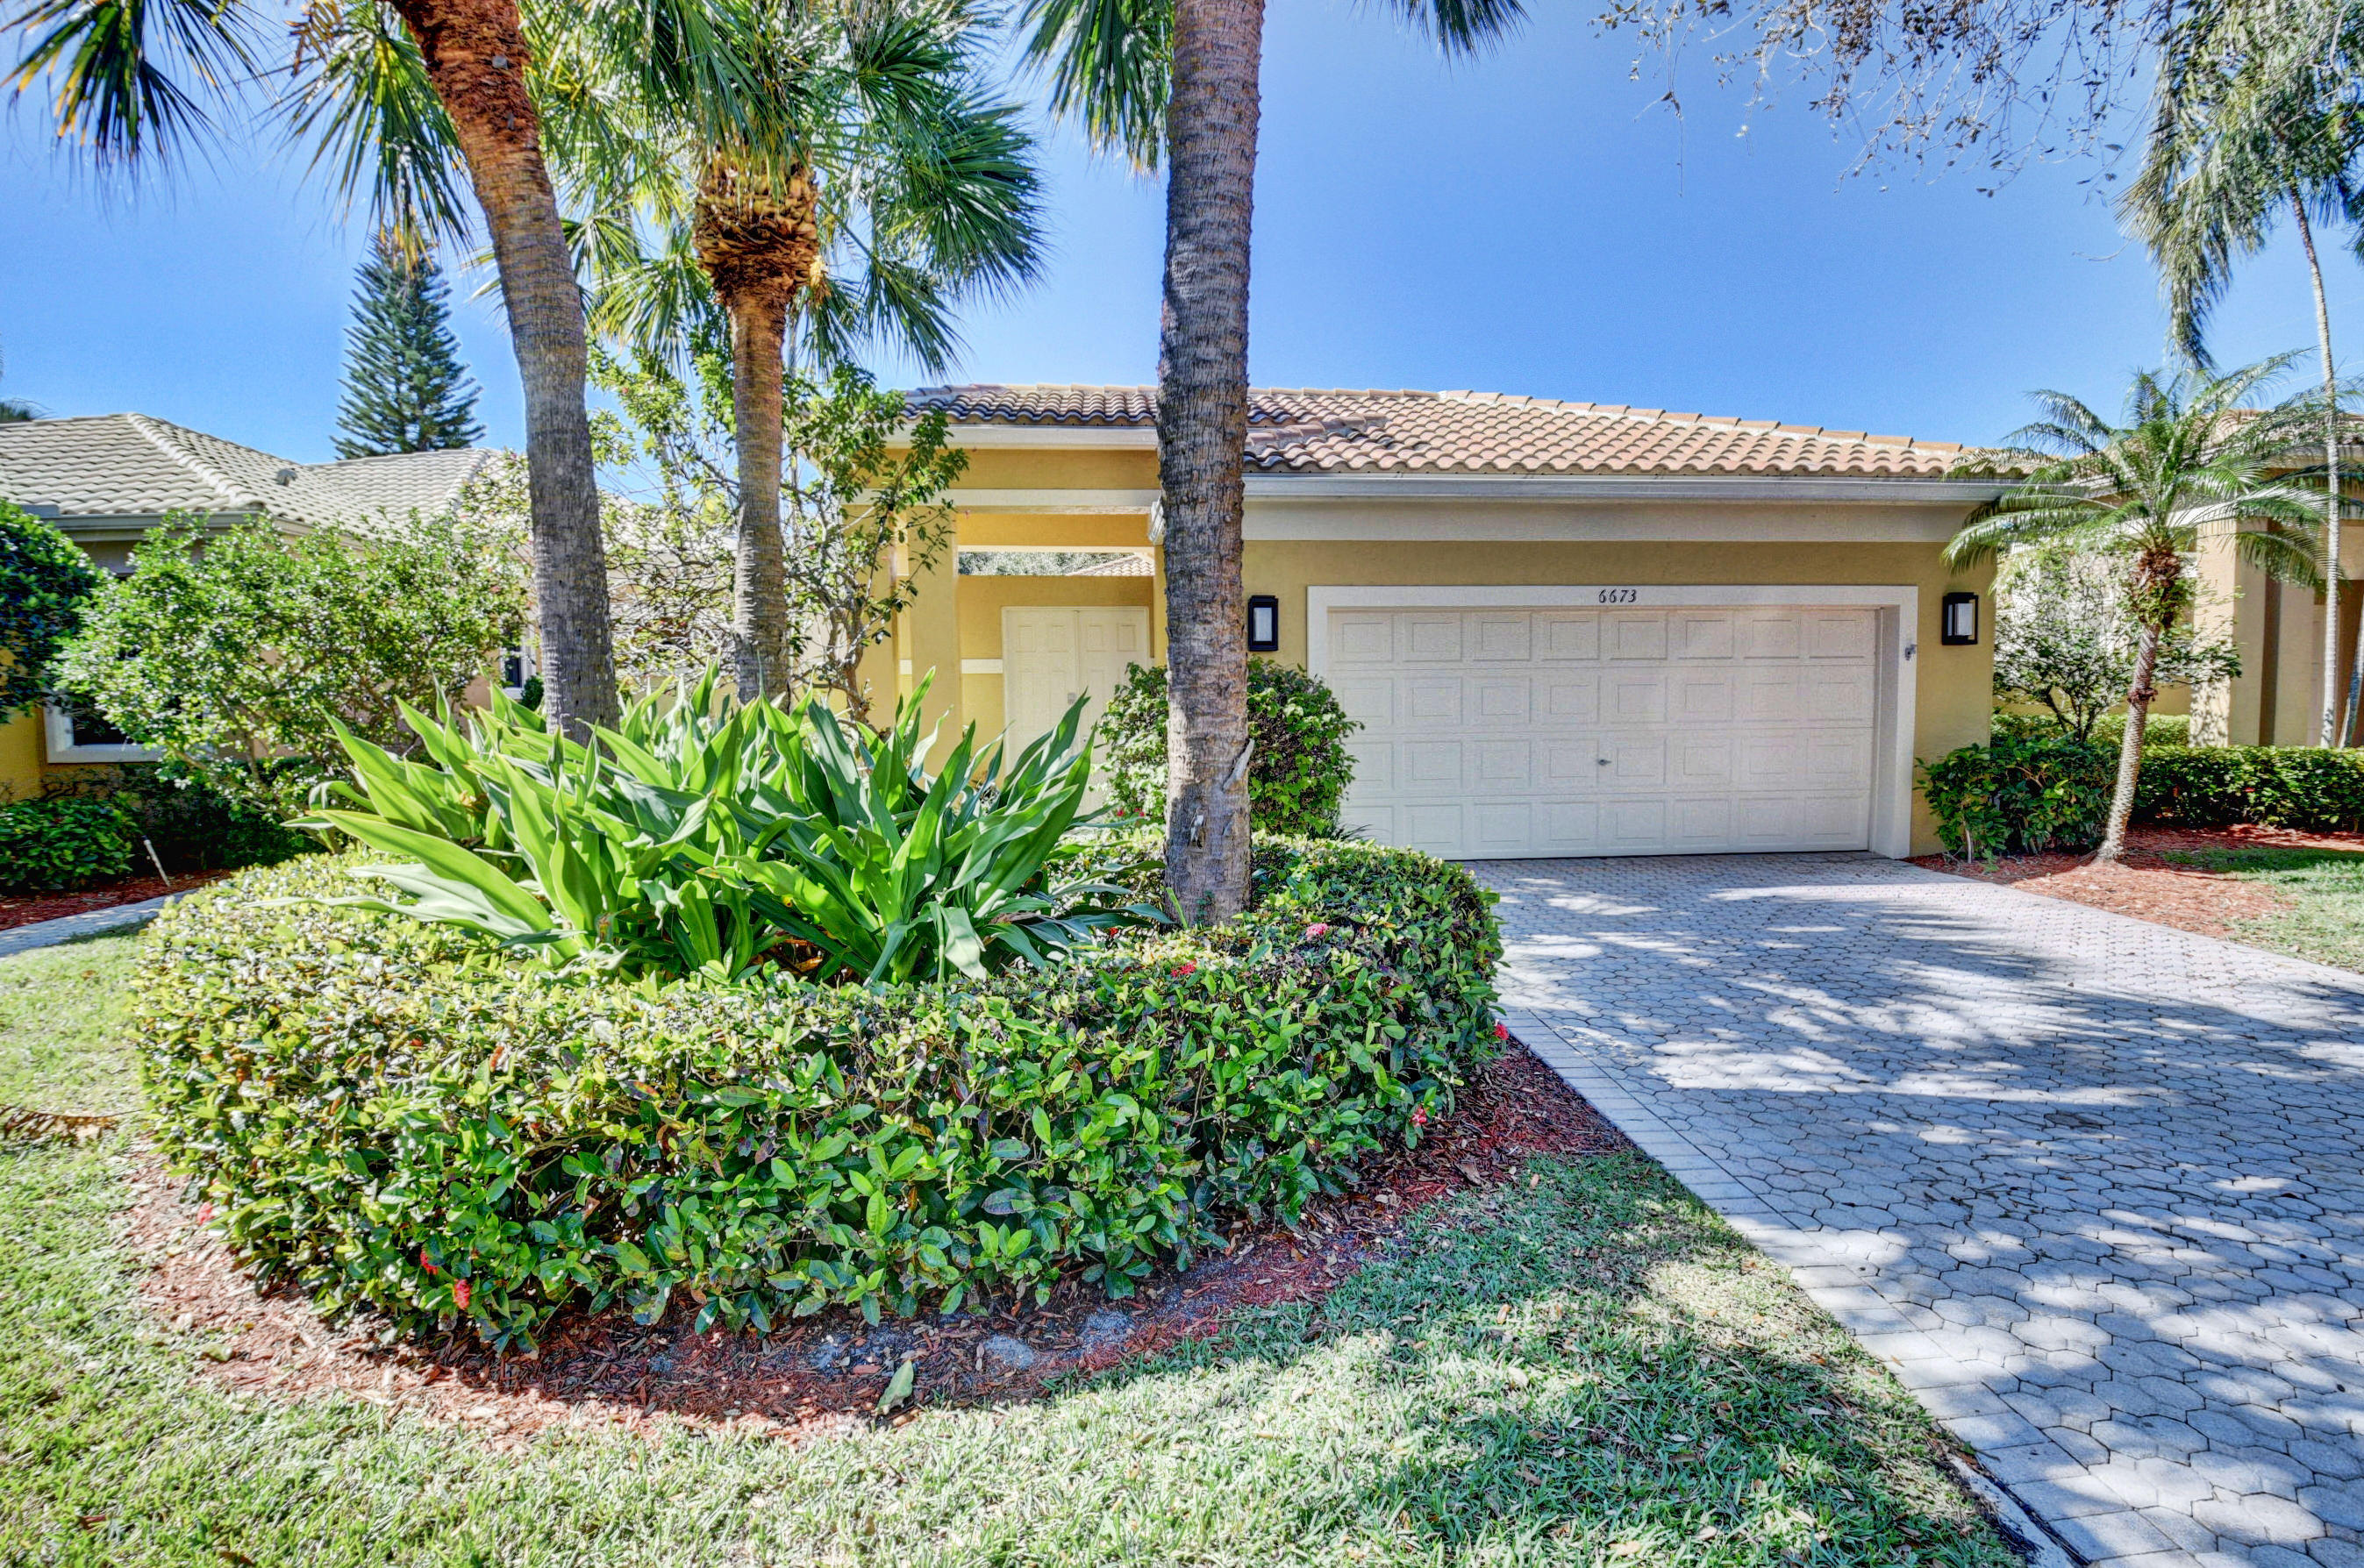 6673 NW 24th Terrace, Boca Raton, Florida